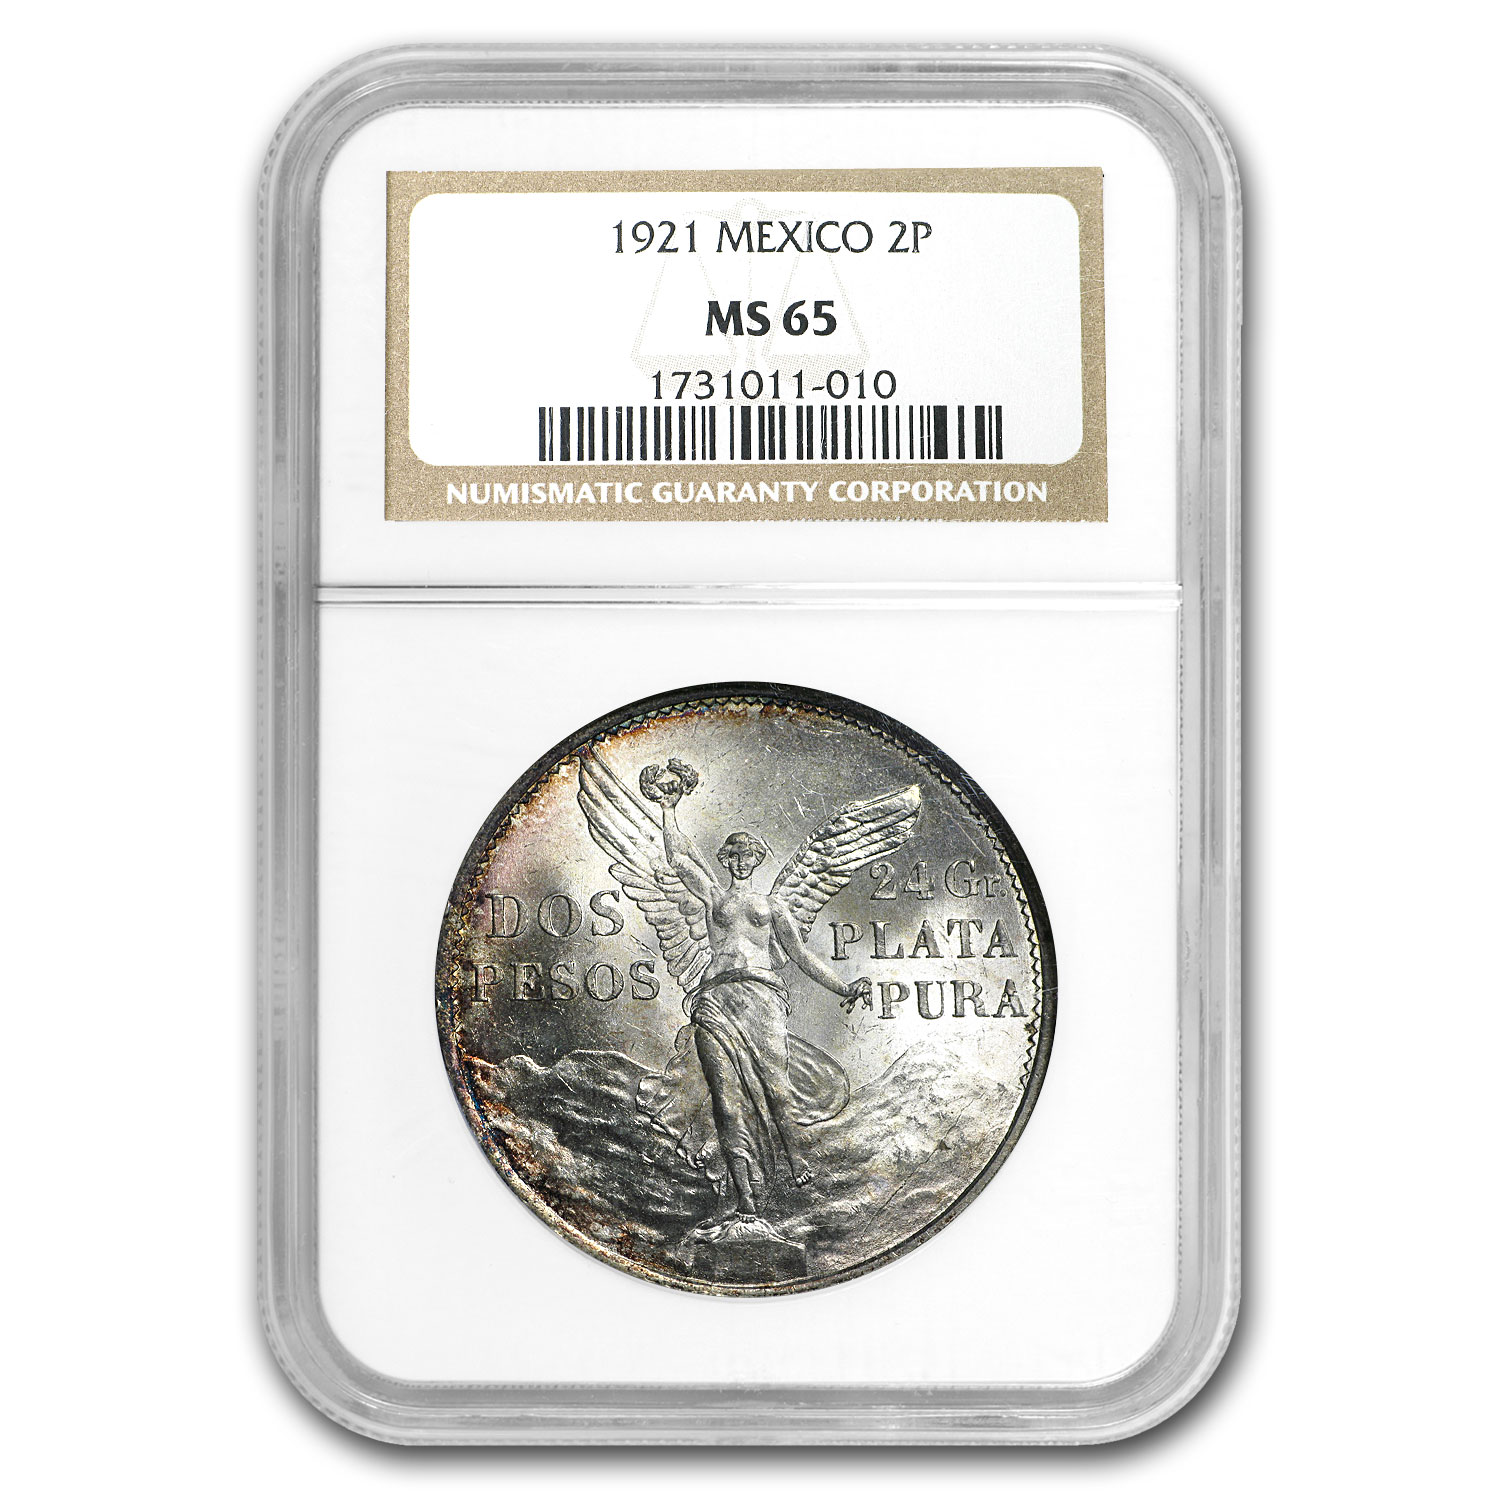 1921 Mexico Silver 2 Pesos Winged Victory MS-65 NGC